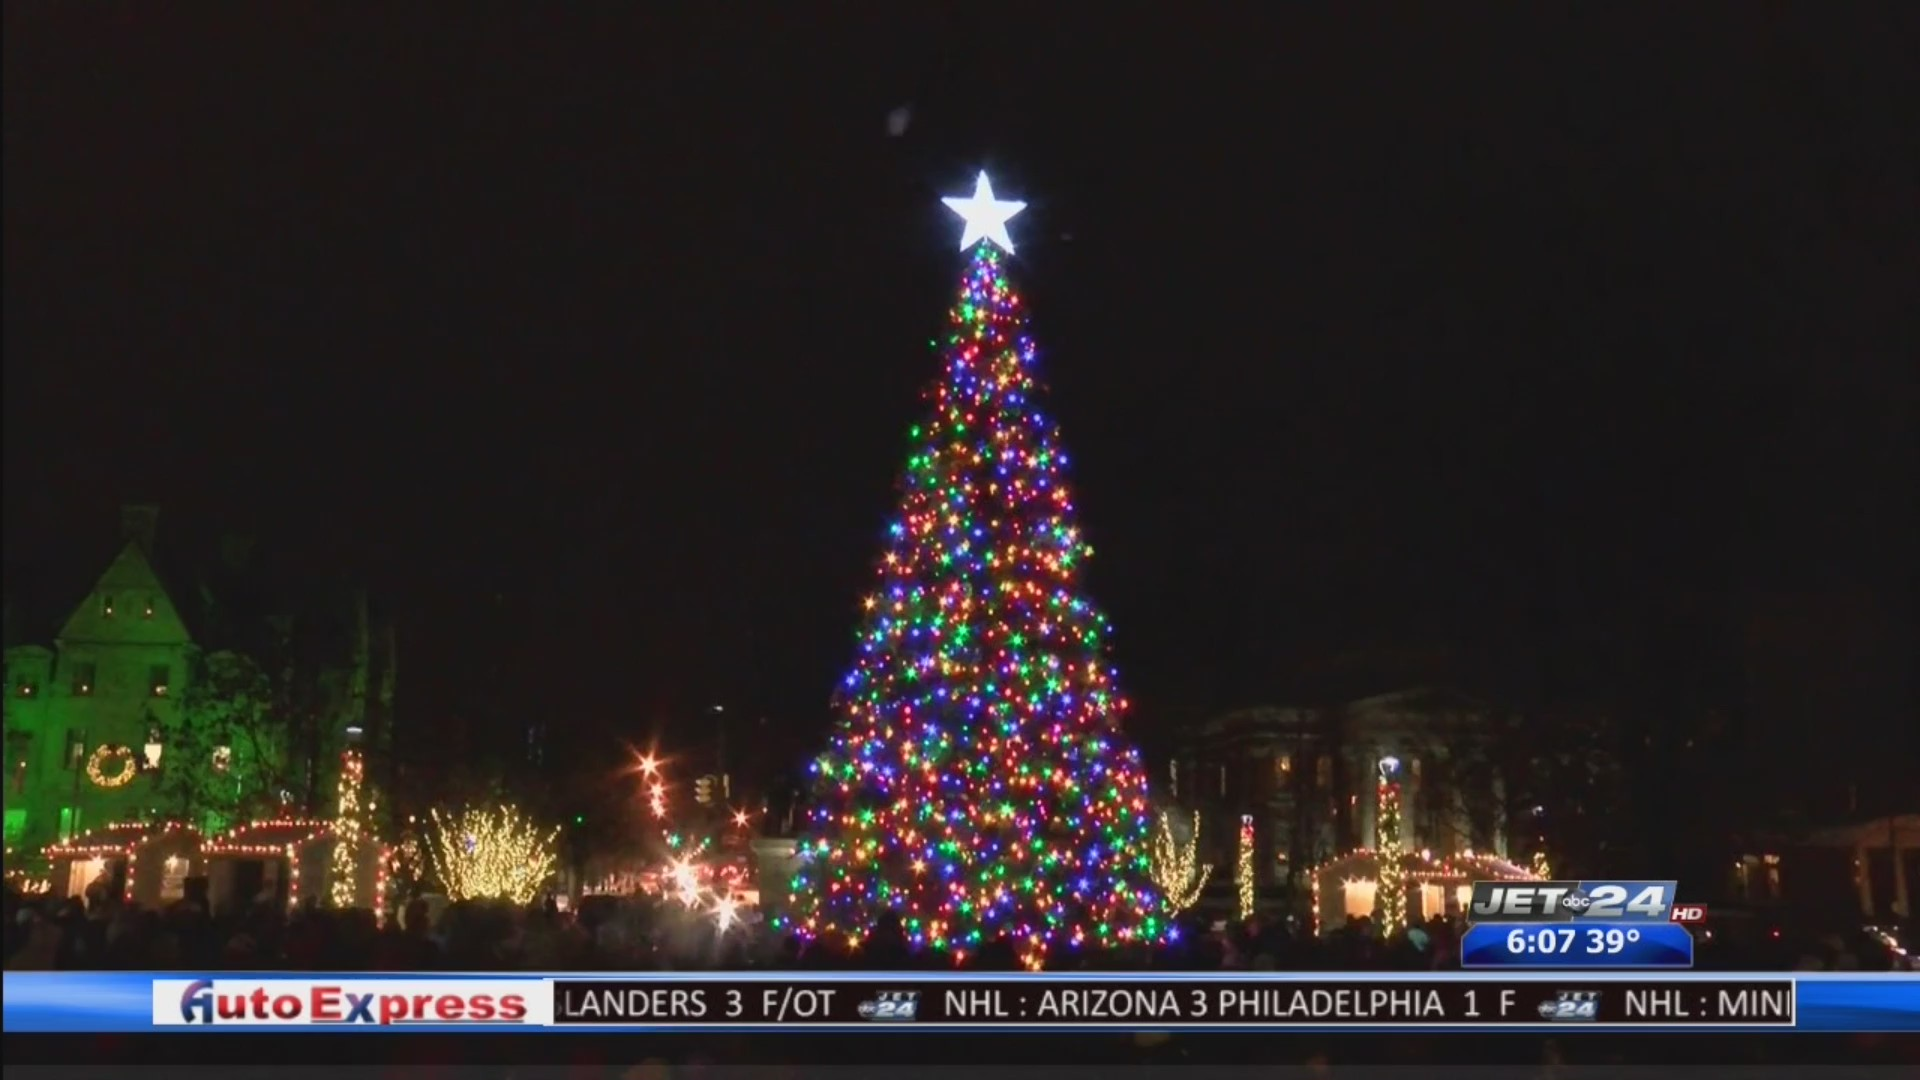 Perry Square Erie Pa 2020 Christmas Lighting Downtown d'Lights taking place in Perry Square Friday evening